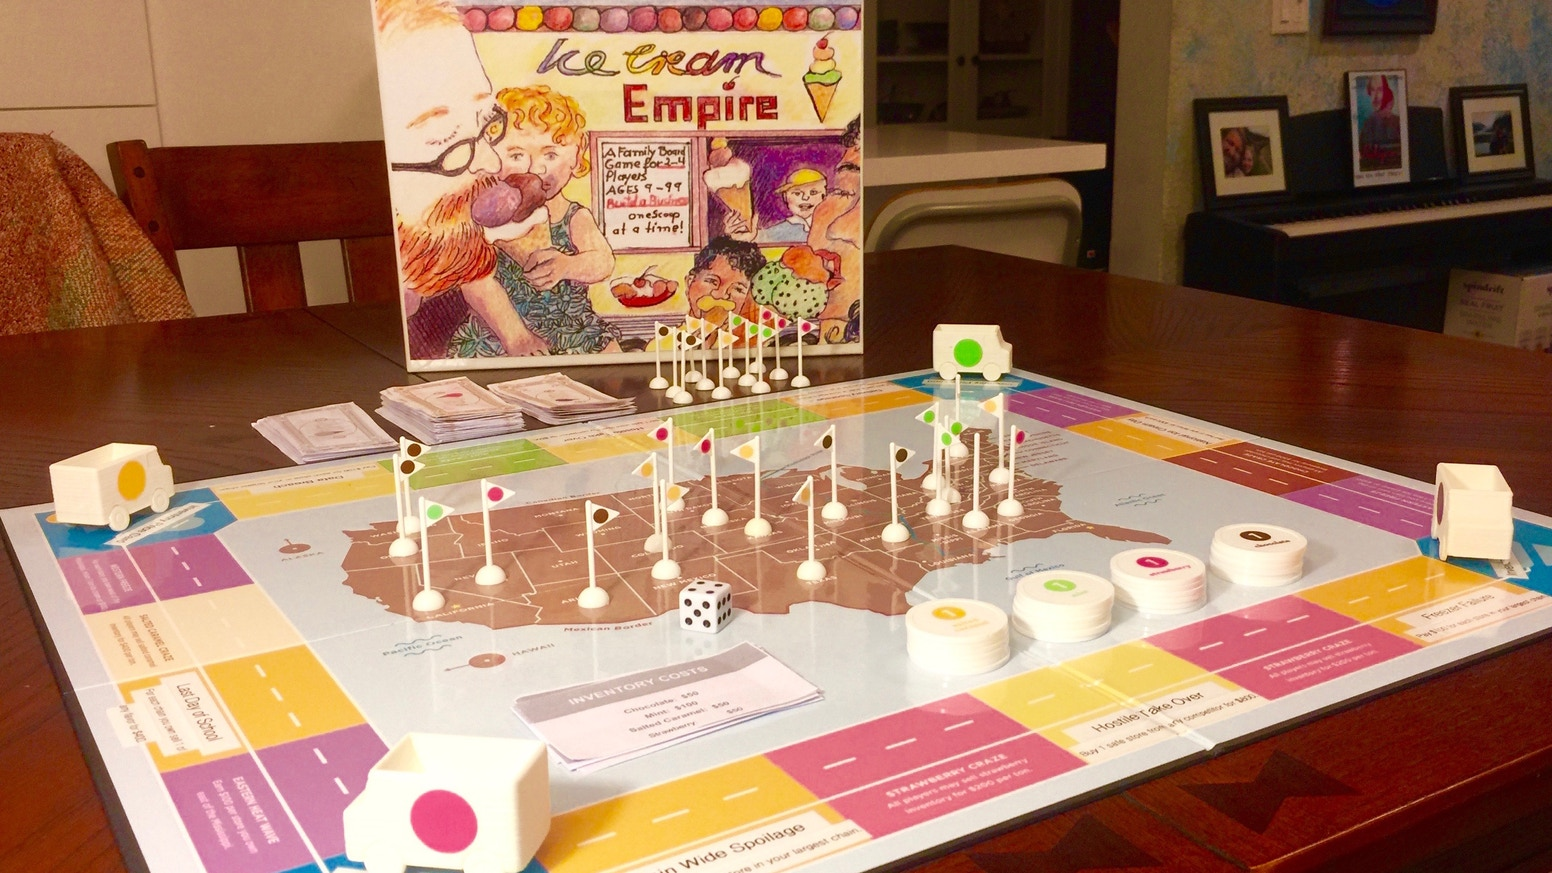 ICE CREAM EMPIRE can be pre-purchased: BackerKit.com and available on Amazon.com in 2019. Our great new game has just arrived for gamers, fun families and ice cream fans everywhere! Pre-order your game today pretty please with a cherry on top!